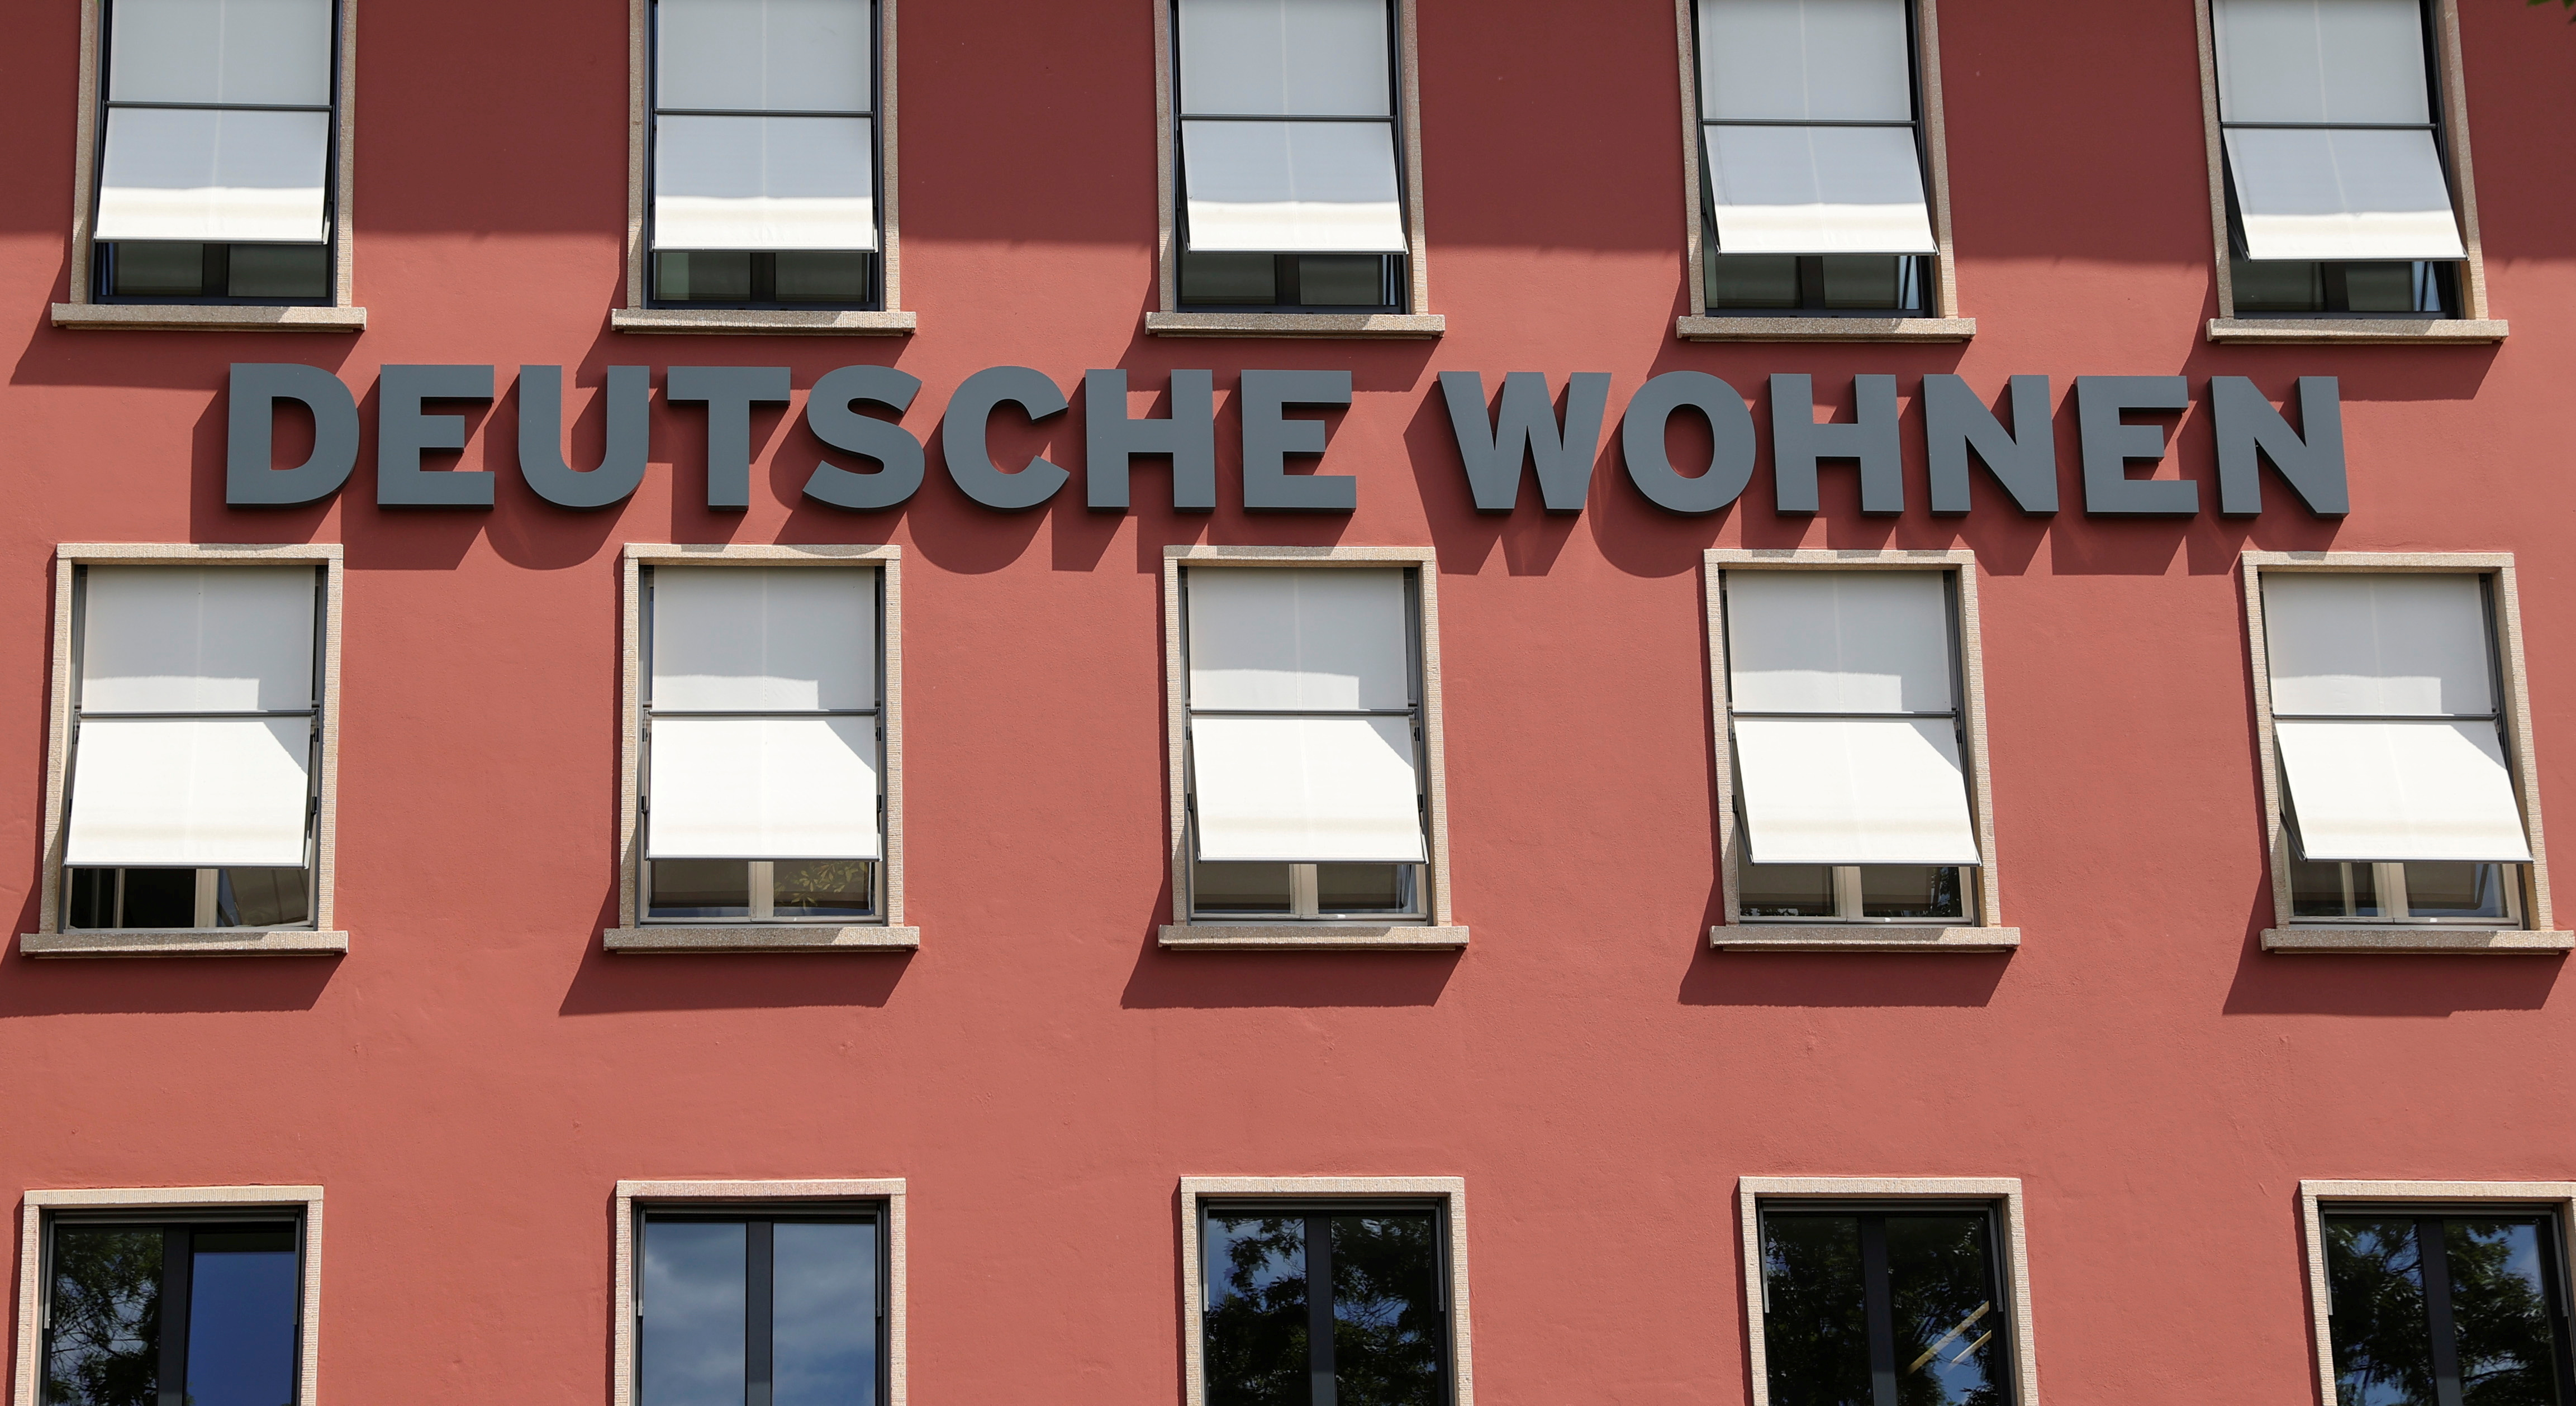 An office building of the German property group Deutsche Wohnen is pictured in Berlin, Germany June 2, 2020. REUTERS/Fabrizio Bensch/File Photo